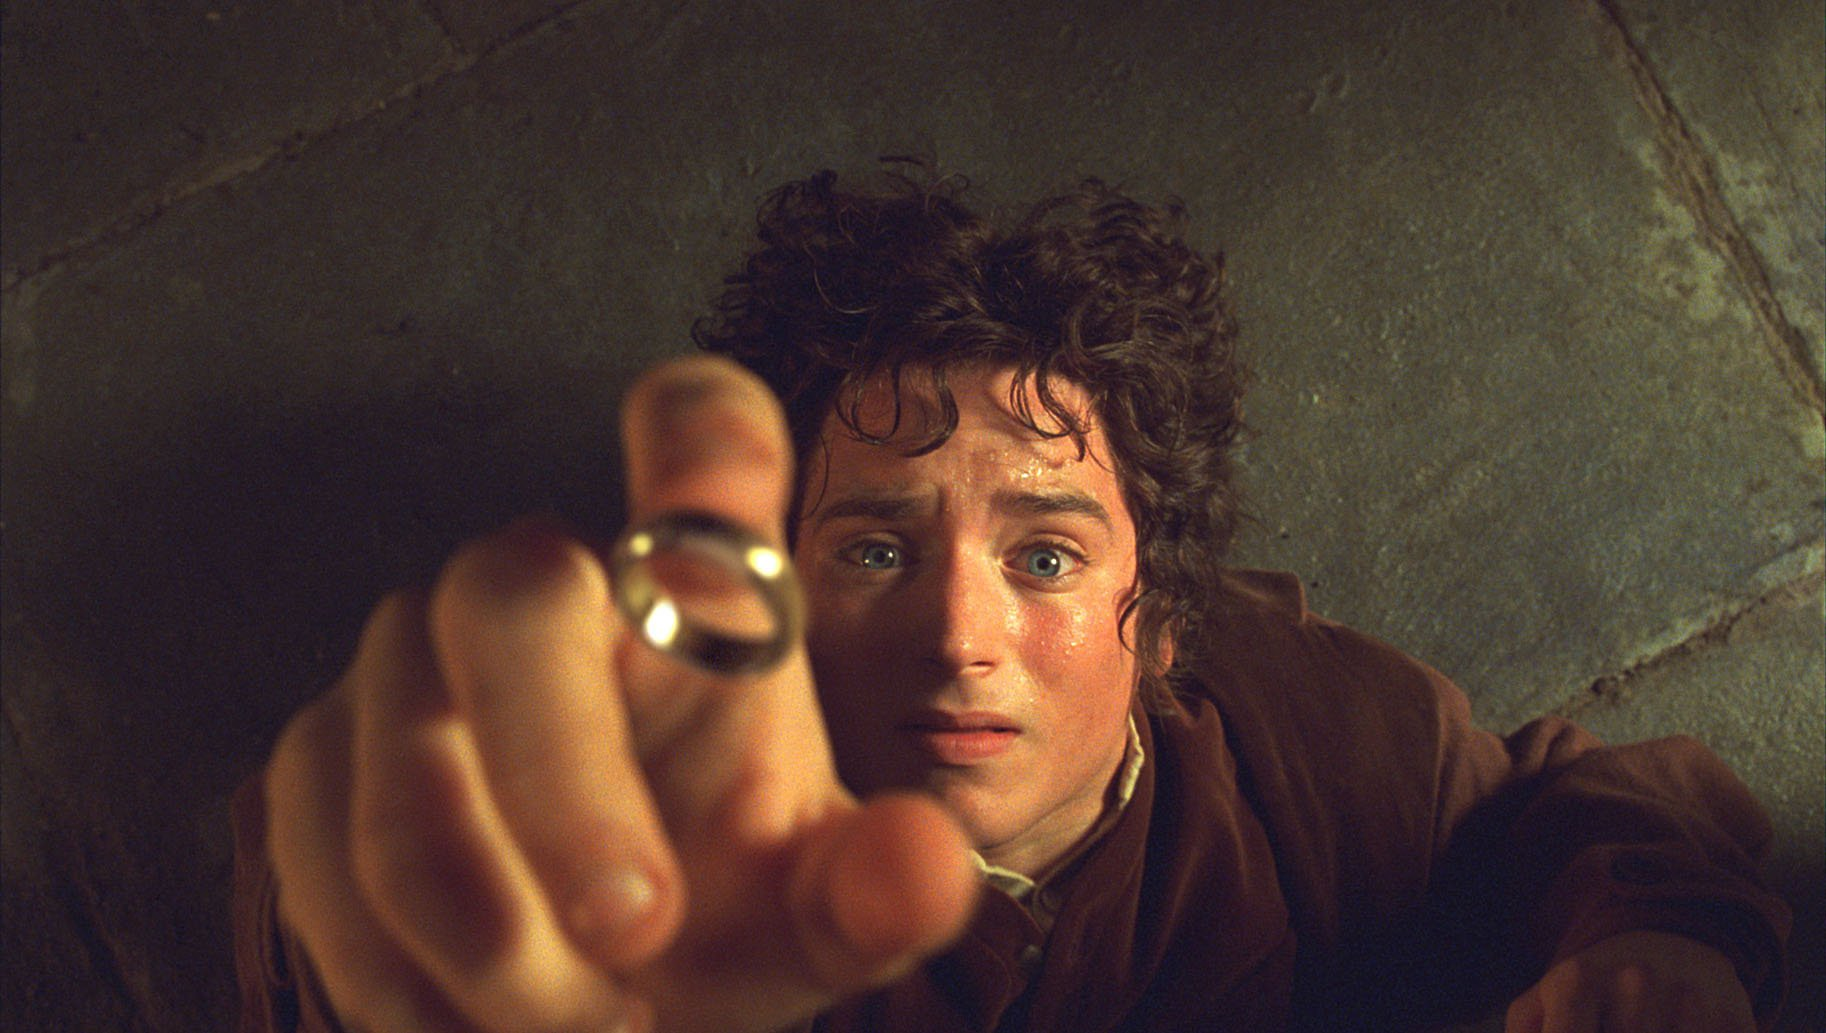 10 films and shows to watch on Netflix while you wait for Lord Of The Rings on Amazon Prime